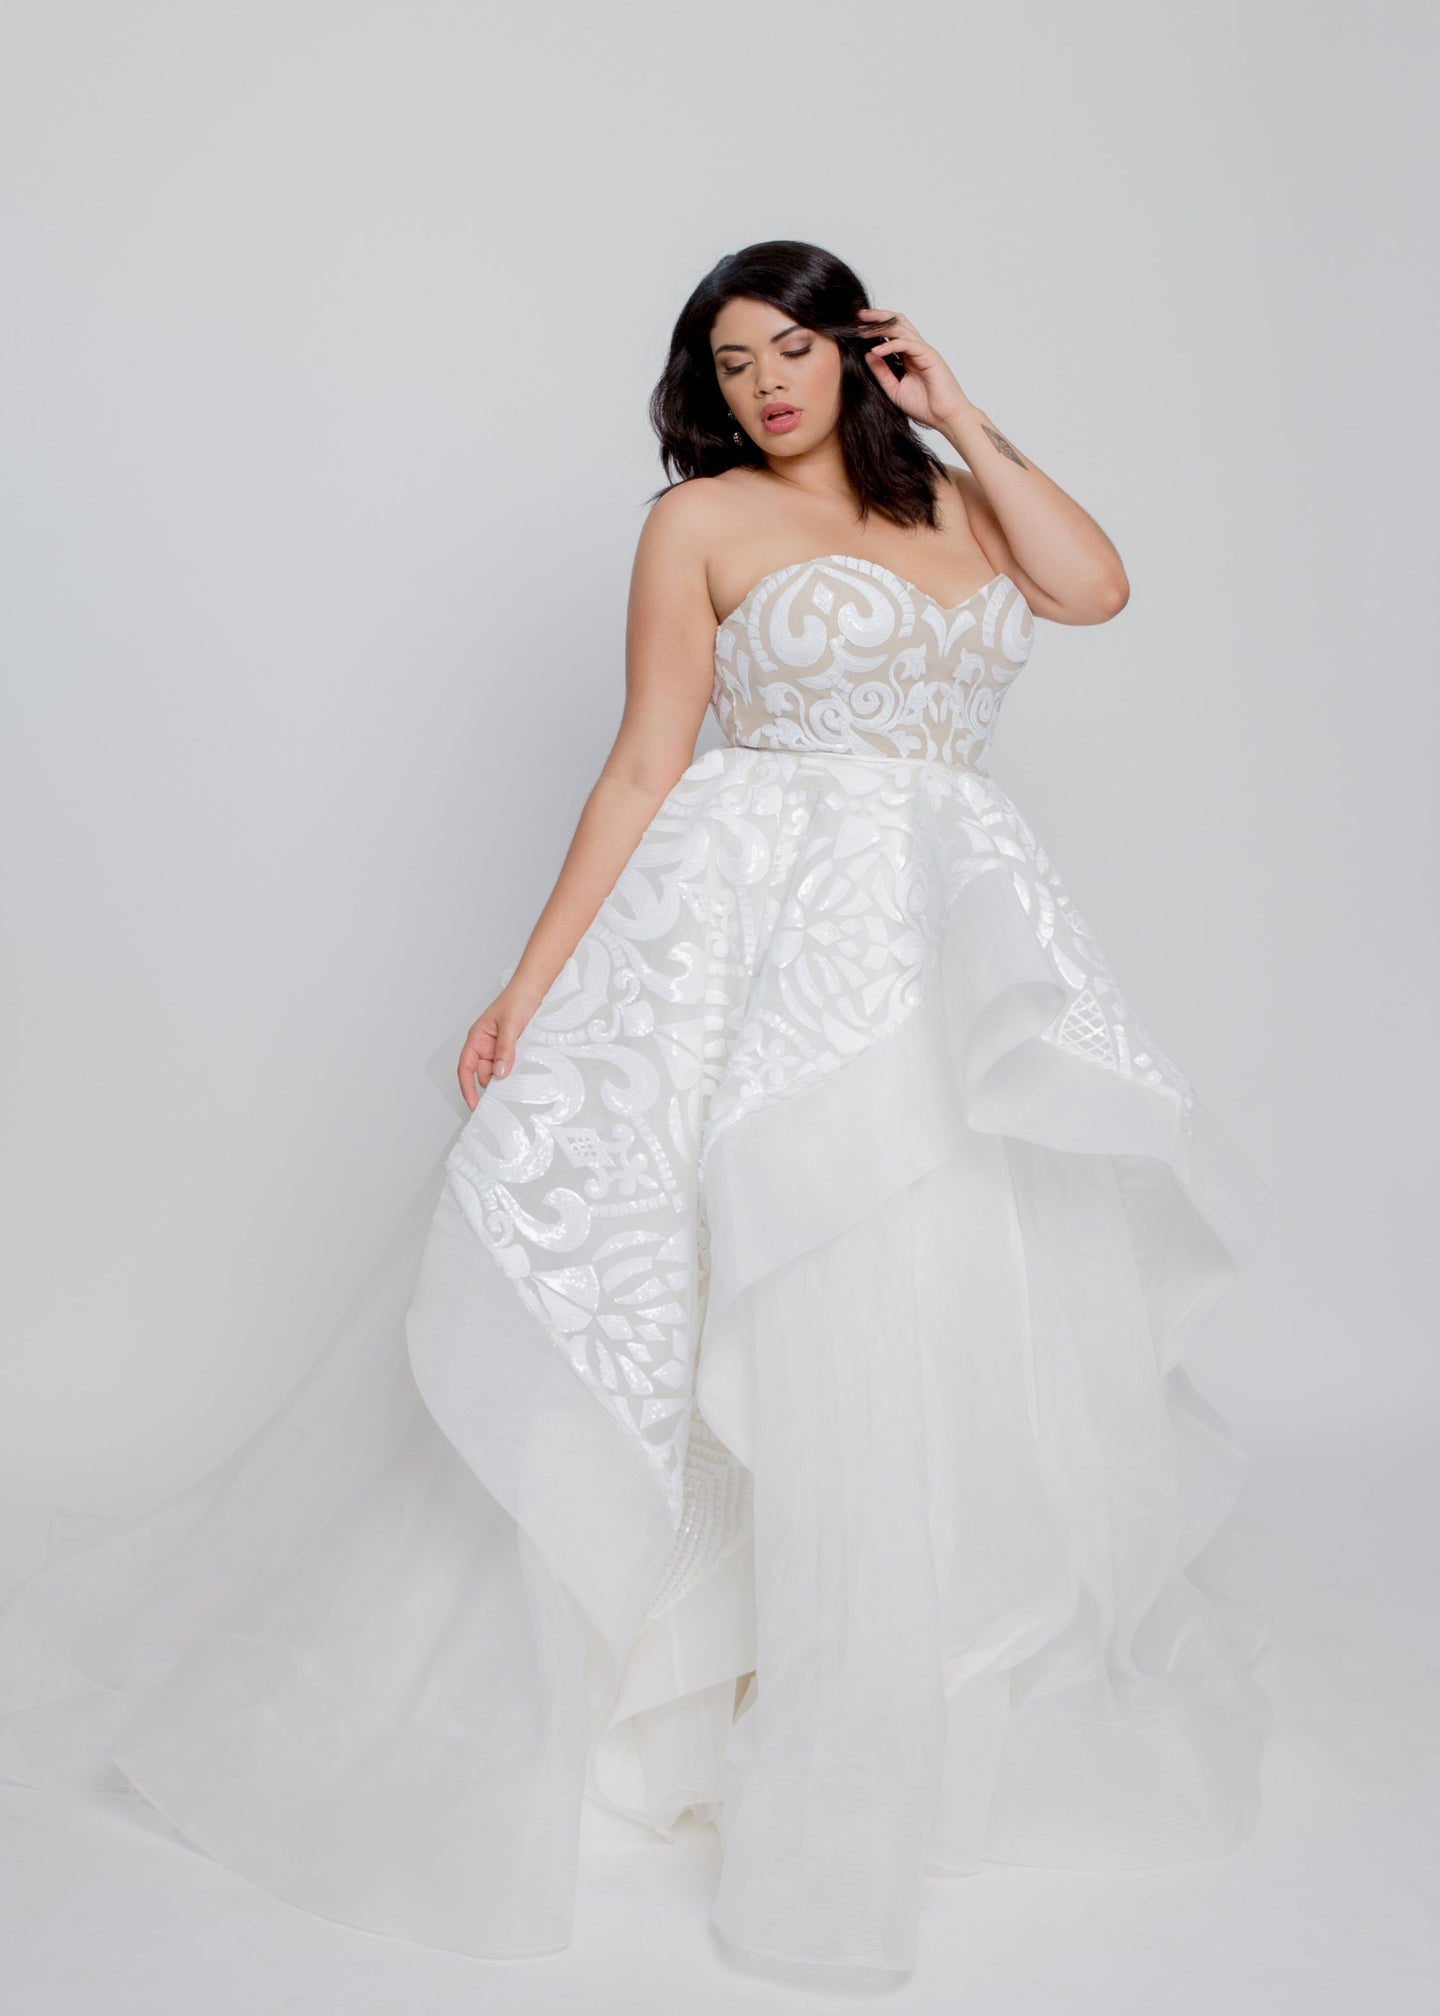 Gorgeous bridal gowns for all body shapes: plus size, curvy, or petite brides. Try on our wedding dresses at home. Size 0-30. Comfortable. Convenient. Fun. Lace or satin. Mermaid or A-line. This intricately detailed sequin-embellished dress is a unique, on-trend ball gown that you will admire long after your wedding day. Beautifully beaded sweetheart bustier leads to layered skirt with horsehair trimmed organza, providing great volume and staying power.